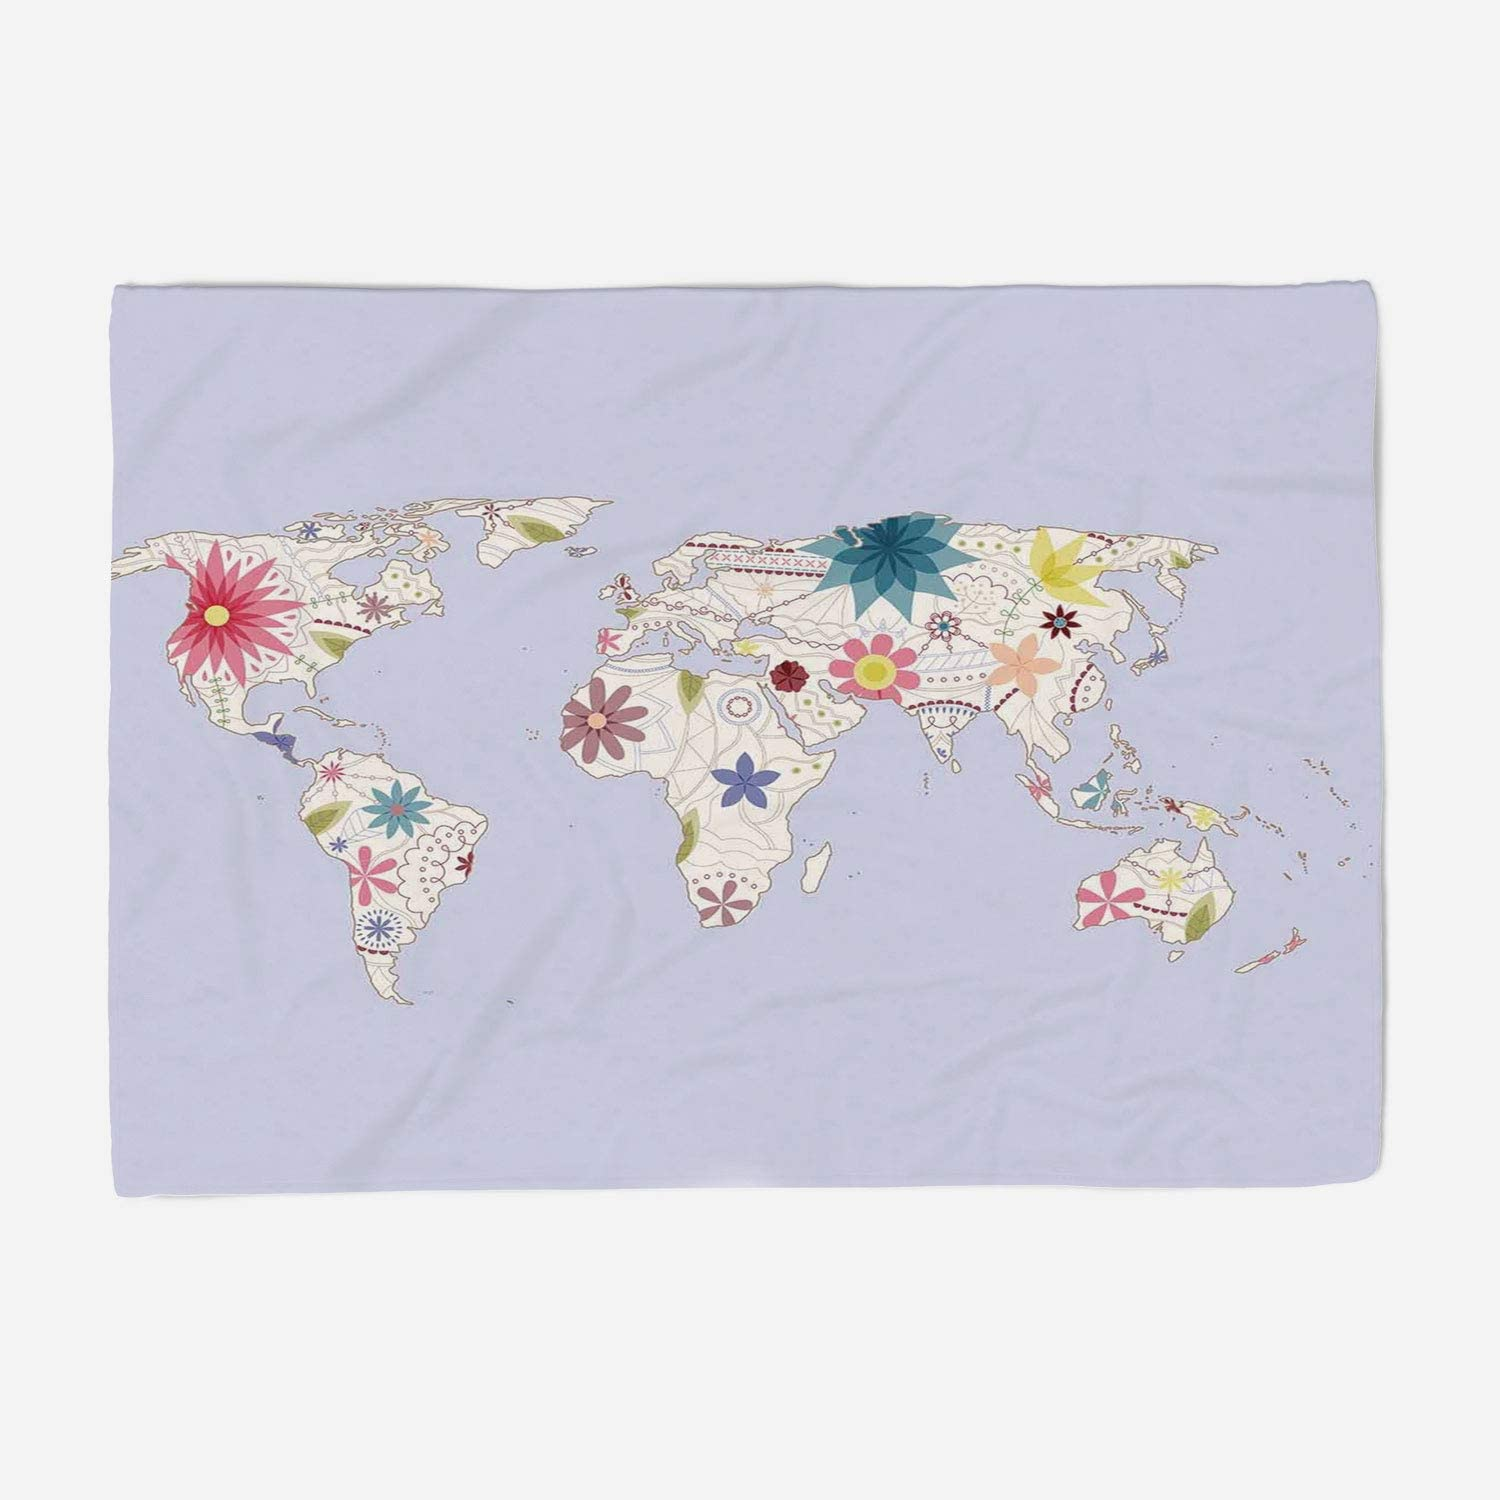 YOLIYANA Microfiber Throw Blanket Set Perfect for Couch Sofa or Bed 59x49 inches Floral World Map,Retro Style Map with Pastel Toned Blossoms Kids Girls Atlas Illustration Decorative,Cream purplec